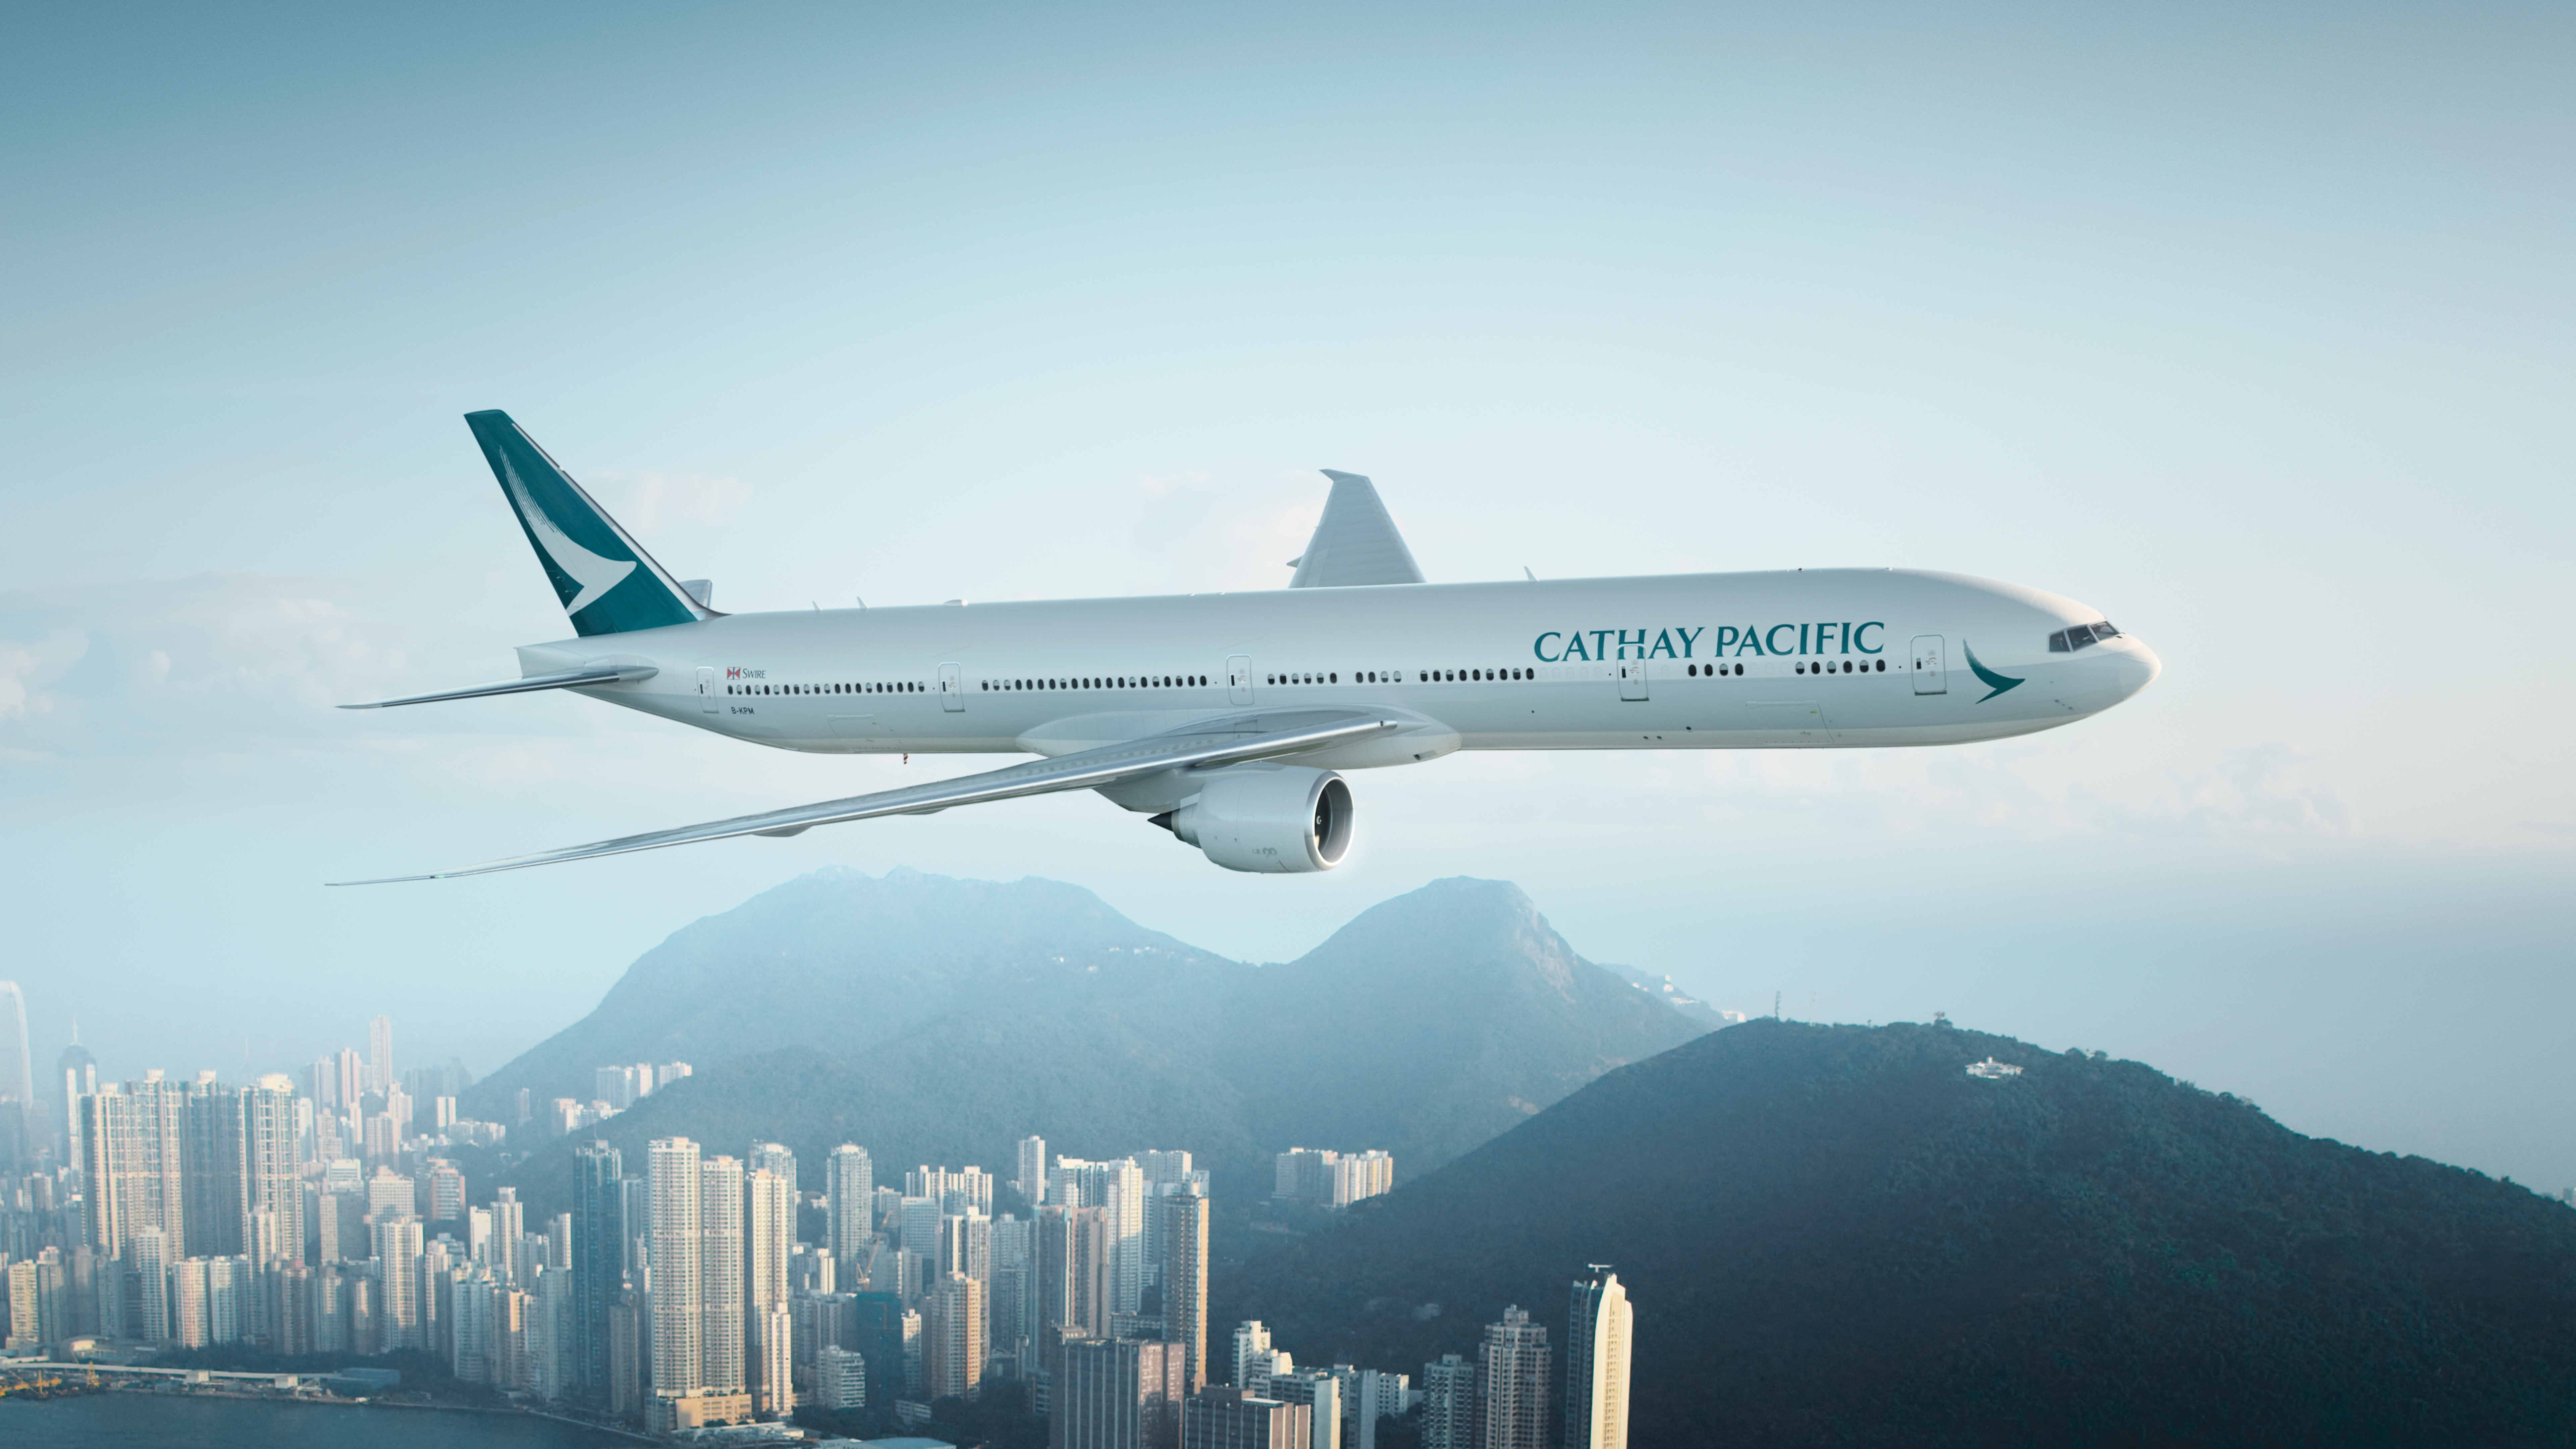 Synchrony financial and cathay pacific airways to introduce credit cathay pacific airways julie jarratt 415 848 2006 communications manager americas juliejarrattcathaypacific reheart Images